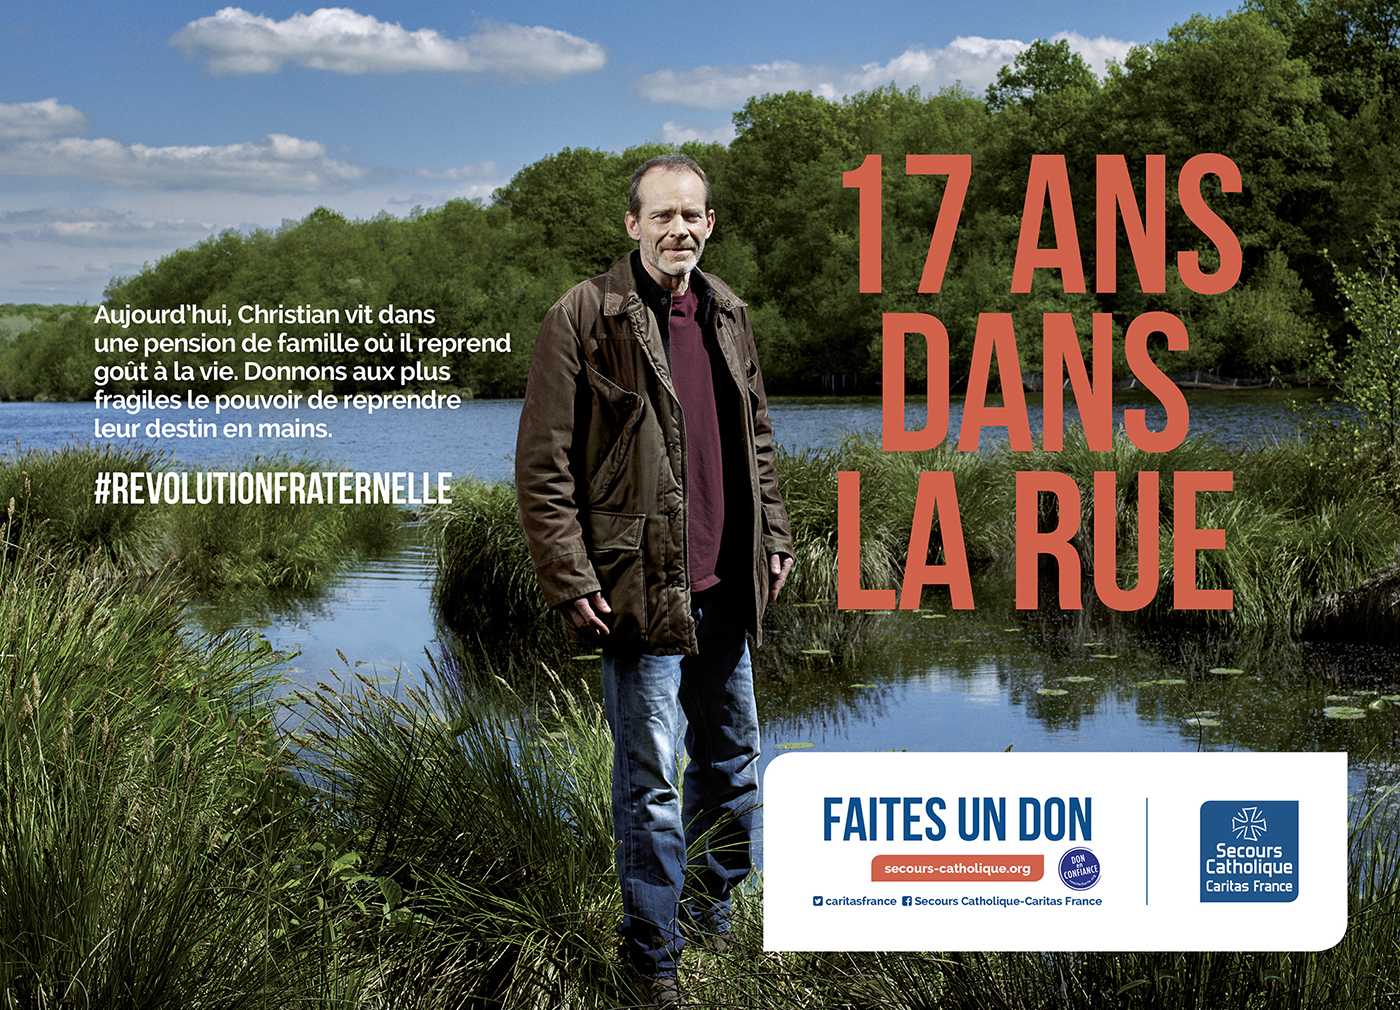 Thibault Stipal - Photographer - CAMPAGNE NATIONALE SECOURS CATHOLIQUE